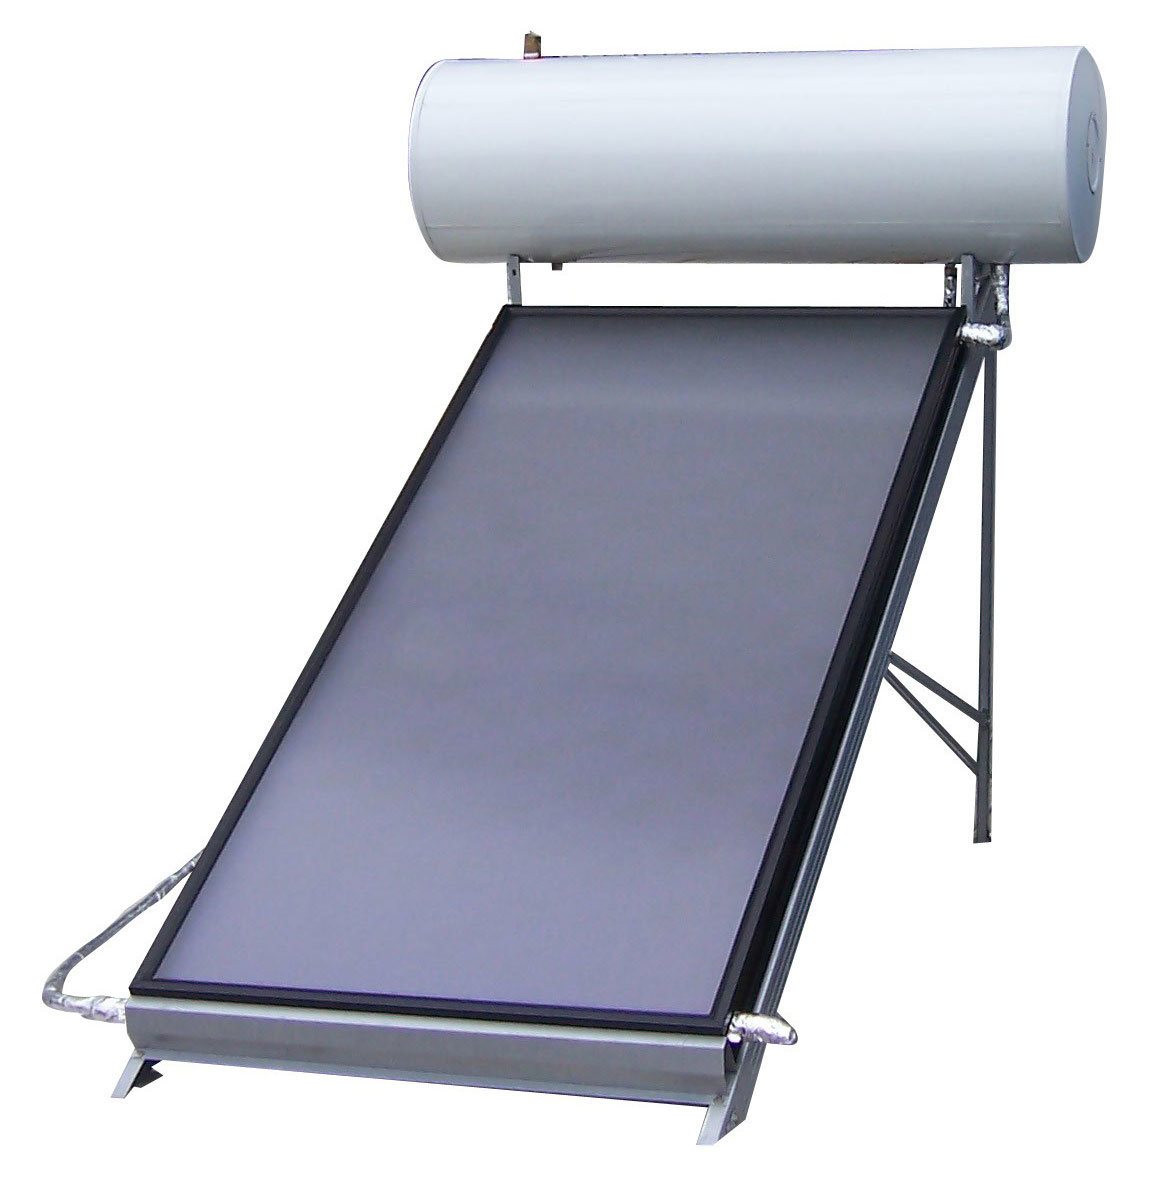 China Freestanding High Pressure Solar Water Heater Panel Photos ...